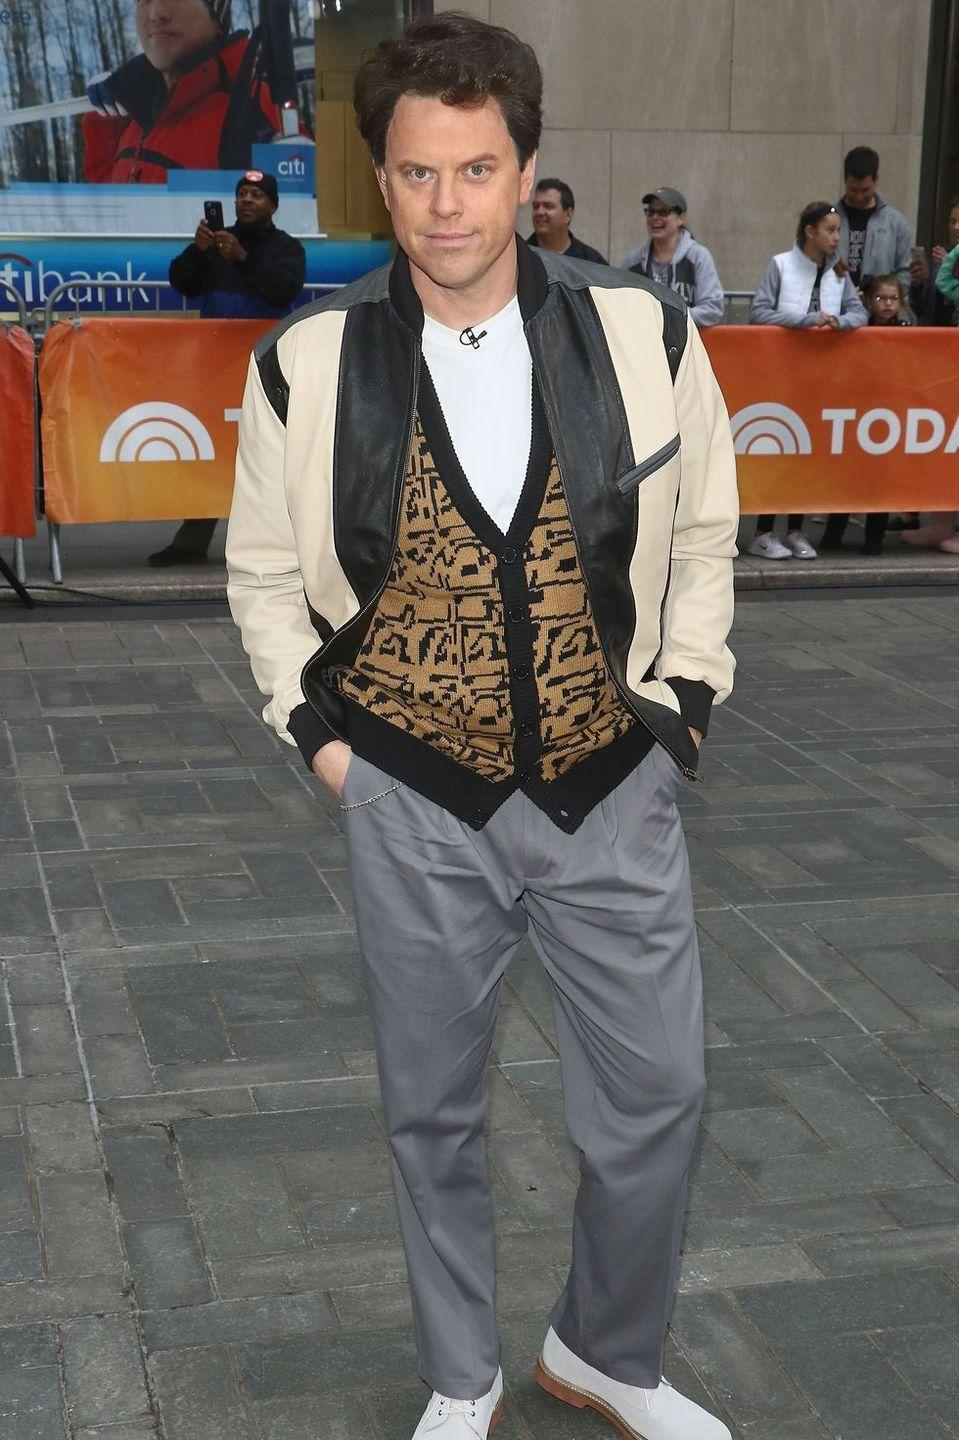 """<p>You don't need to take the whole day off to put together this Ferris Bueller costume (though you can if it helps you get into the spirit). Just layer a vest over a plain white T-shirt and pair it with a beige jacket and slacks.</p><p><strong>What You'll Need: </strong><a href=""""https://www.amazon.com/Bueller-Costume-Matthew-Broderick-Sweater/dp/B014F0M29C?tag=syn-yahoo-20&ascsubtag=%5Bartid%7C10070.g.28166042%5Bsrc%7Cyahoo-us"""" rel=""""nofollow noopener"""" target=""""_blank"""" data-ylk=""""slk:sweater vest"""" class=""""link rapid-noclick-resp"""">sweater vest</a>, <a href=""""https://www.amazon.com/CRYSULLY-Active-Classic-Closure-Jacket/dp/B07Z4J23T9?tag=syn-yahoo-20&ascsubtag=%5Bartid%7C10070.g.28166042%5Bsrc%7Cyahoo-us"""" rel=""""nofollow noopener"""" target=""""_blank"""" data-ylk=""""slk:beige jacket"""" class=""""link rapid-noclick-resp"""">beige jacket</a>, and <a href=""""https://www.amazon.com/Goodthreads-Standard-Straight-Fit-Porkchop-Stretch/dp/B07JXK749K?tag=syn-yahoo-20&ascsubtag=%5Bartid%7C10070.g.28166042%5Bsrc%7Cyahoo-us"""" rel=""""nofollow noopener"""" target=""""_blank"""" data-ylk=""""slk:gray pants"""" class=""""link rapid-noclick-resp"""">gray pants</a></p>"""